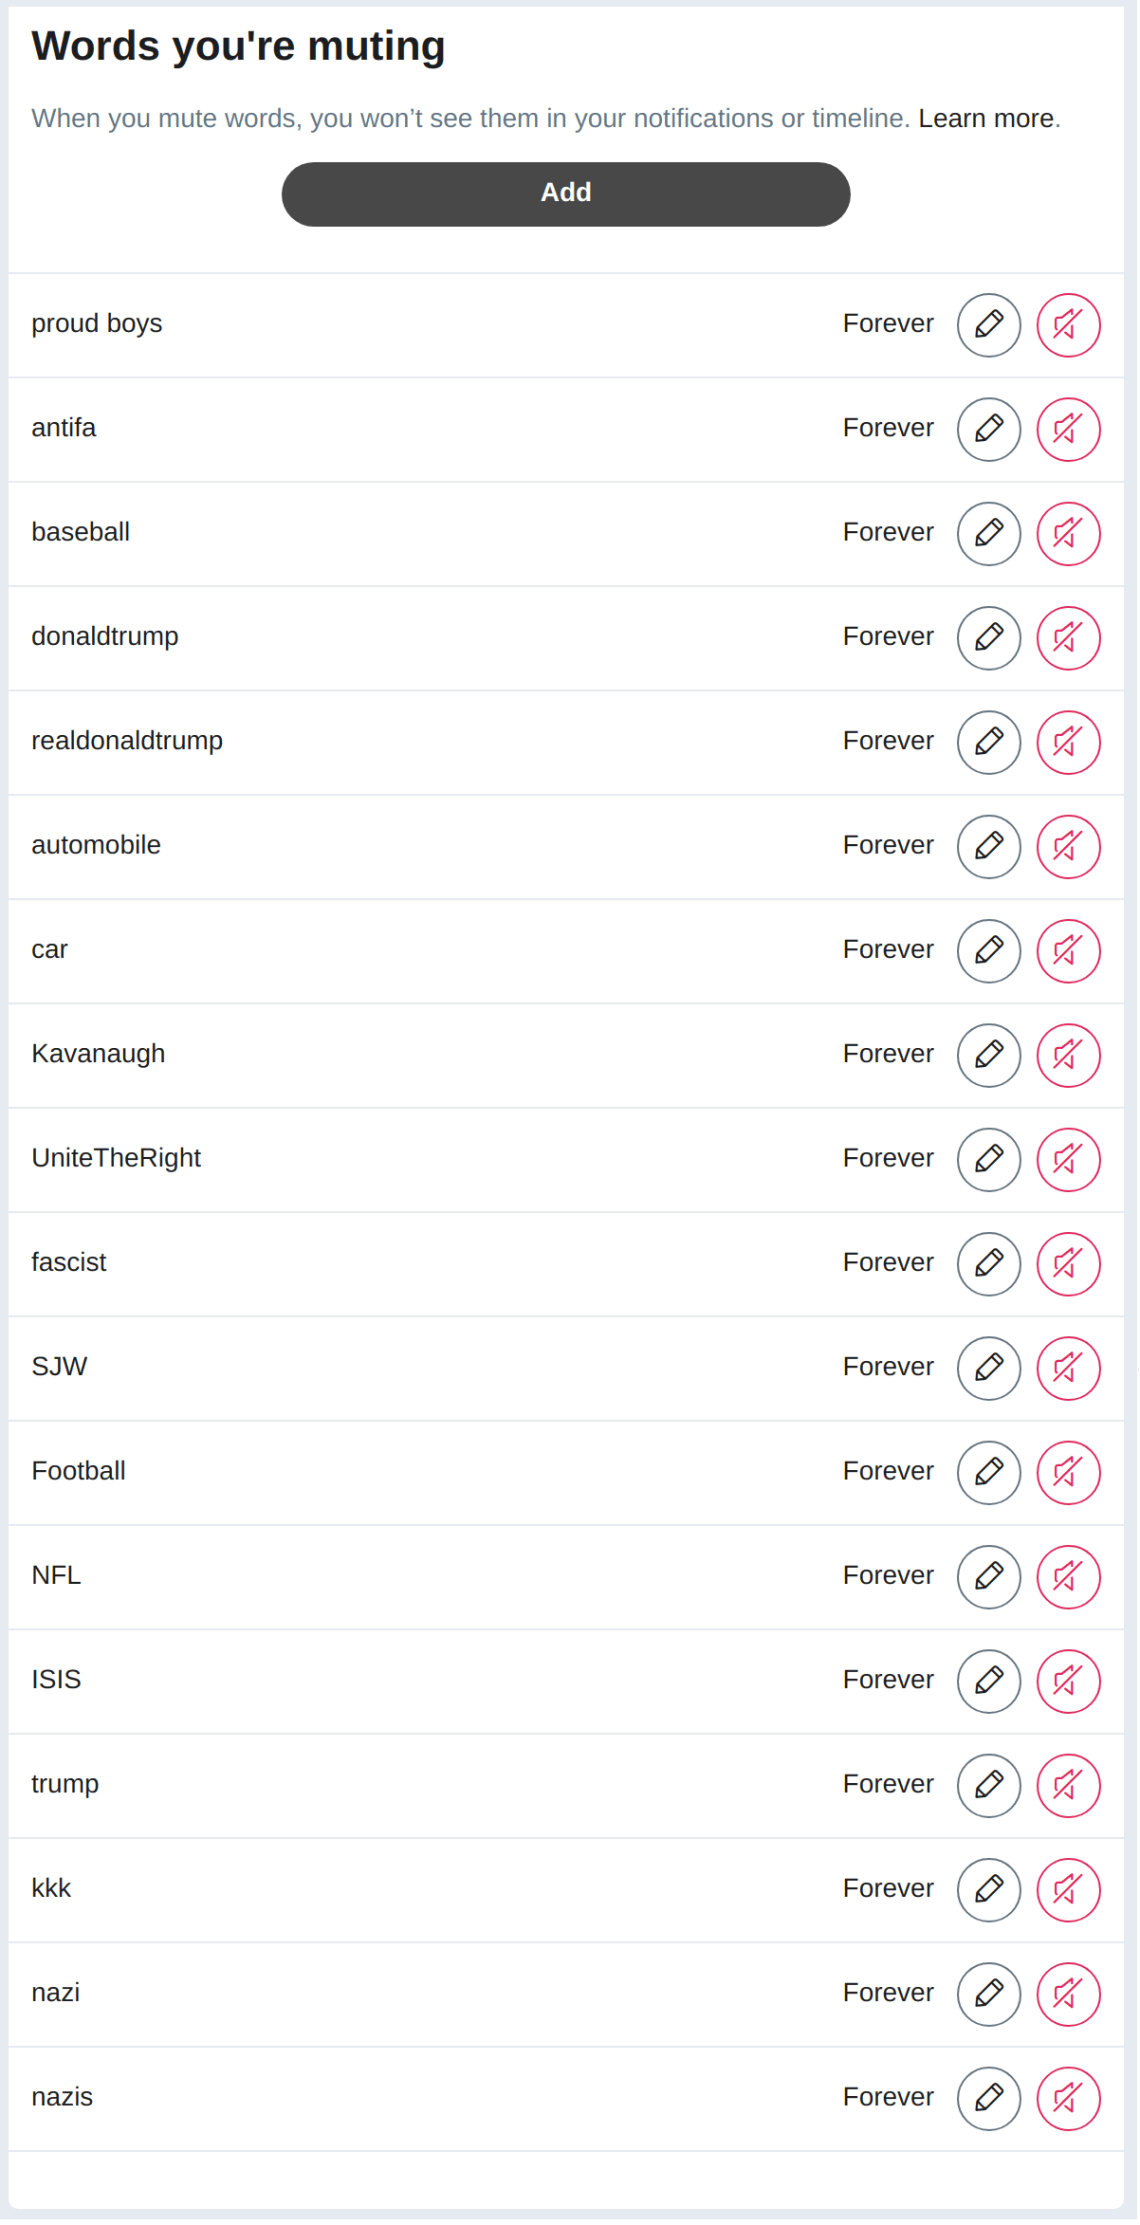 filters-muted-words